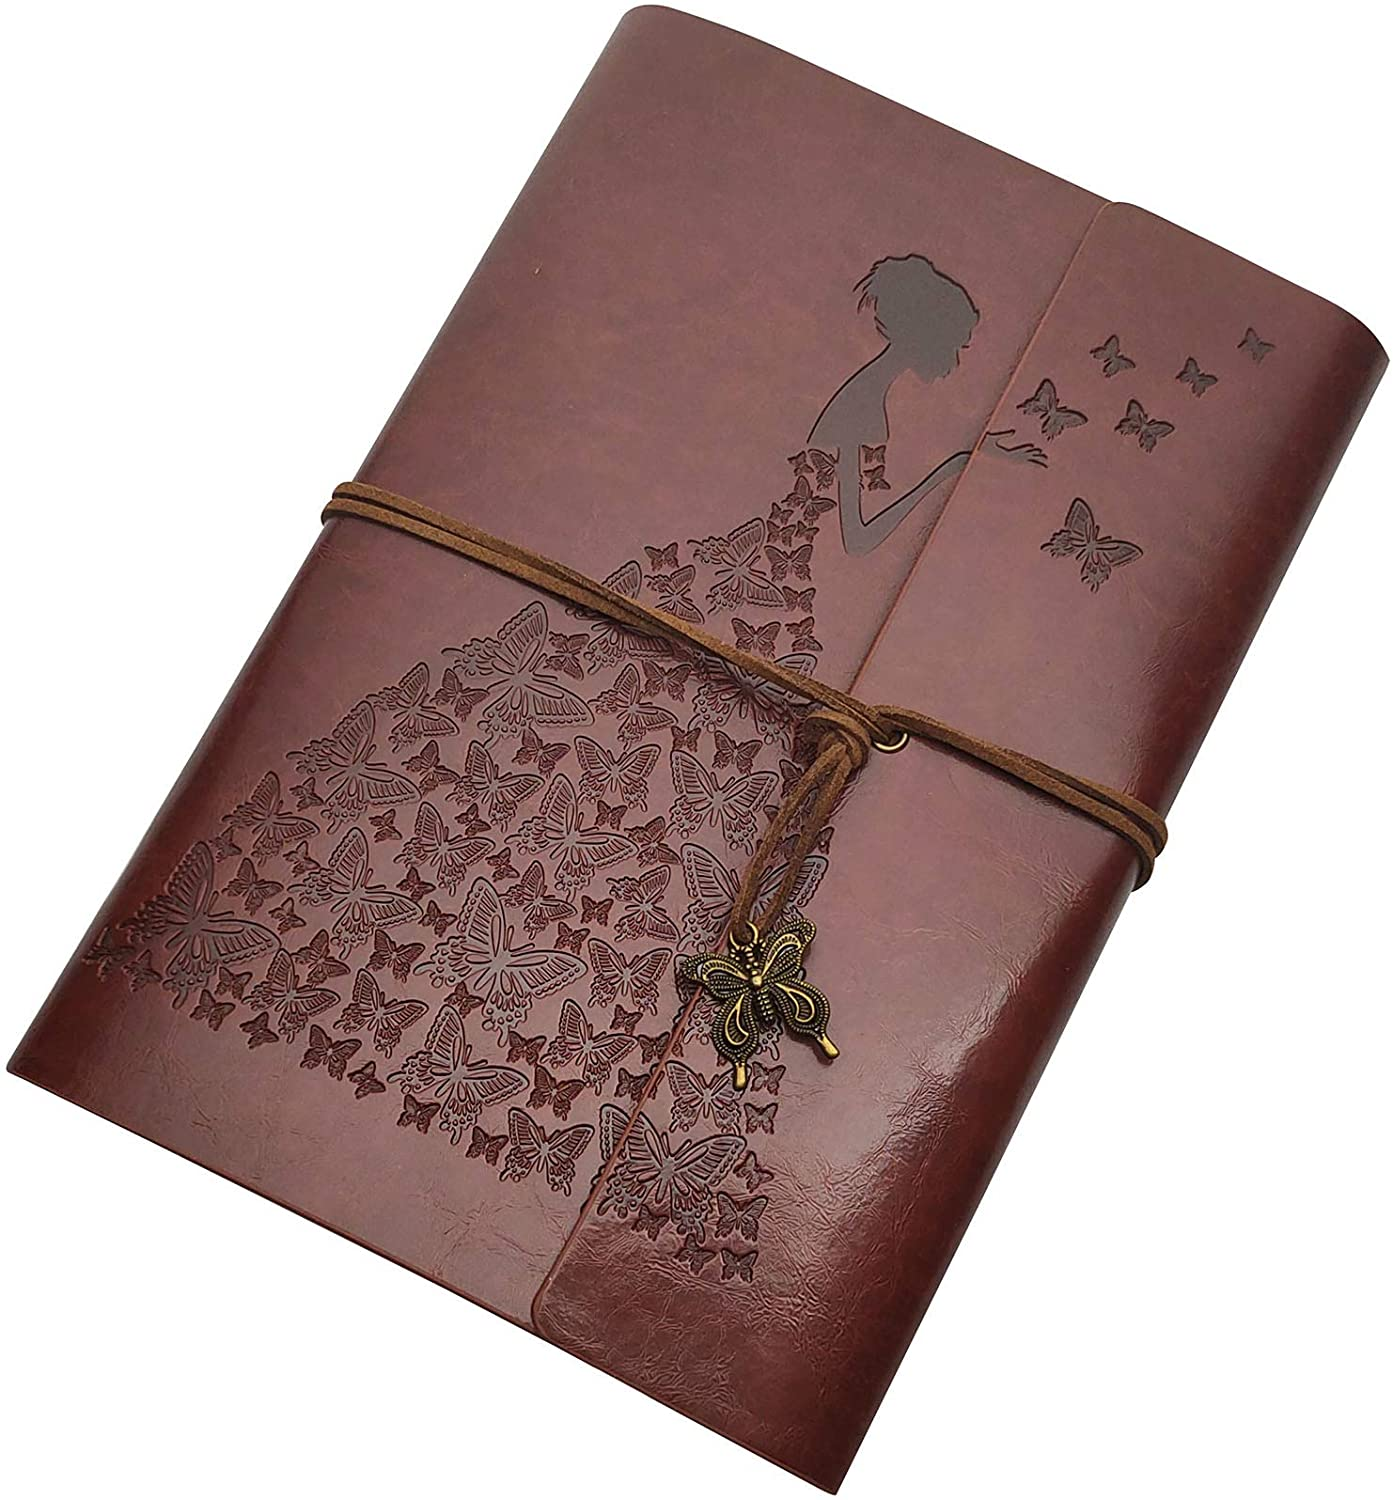 Butterfly Journal Leather Refillable Notebook Premium Retro Spiral Notebook Classic Binder Vintage Embossed Travelers Journal for Art Sketch Travel Diary and Journal Records (Dark Brown, A6)…